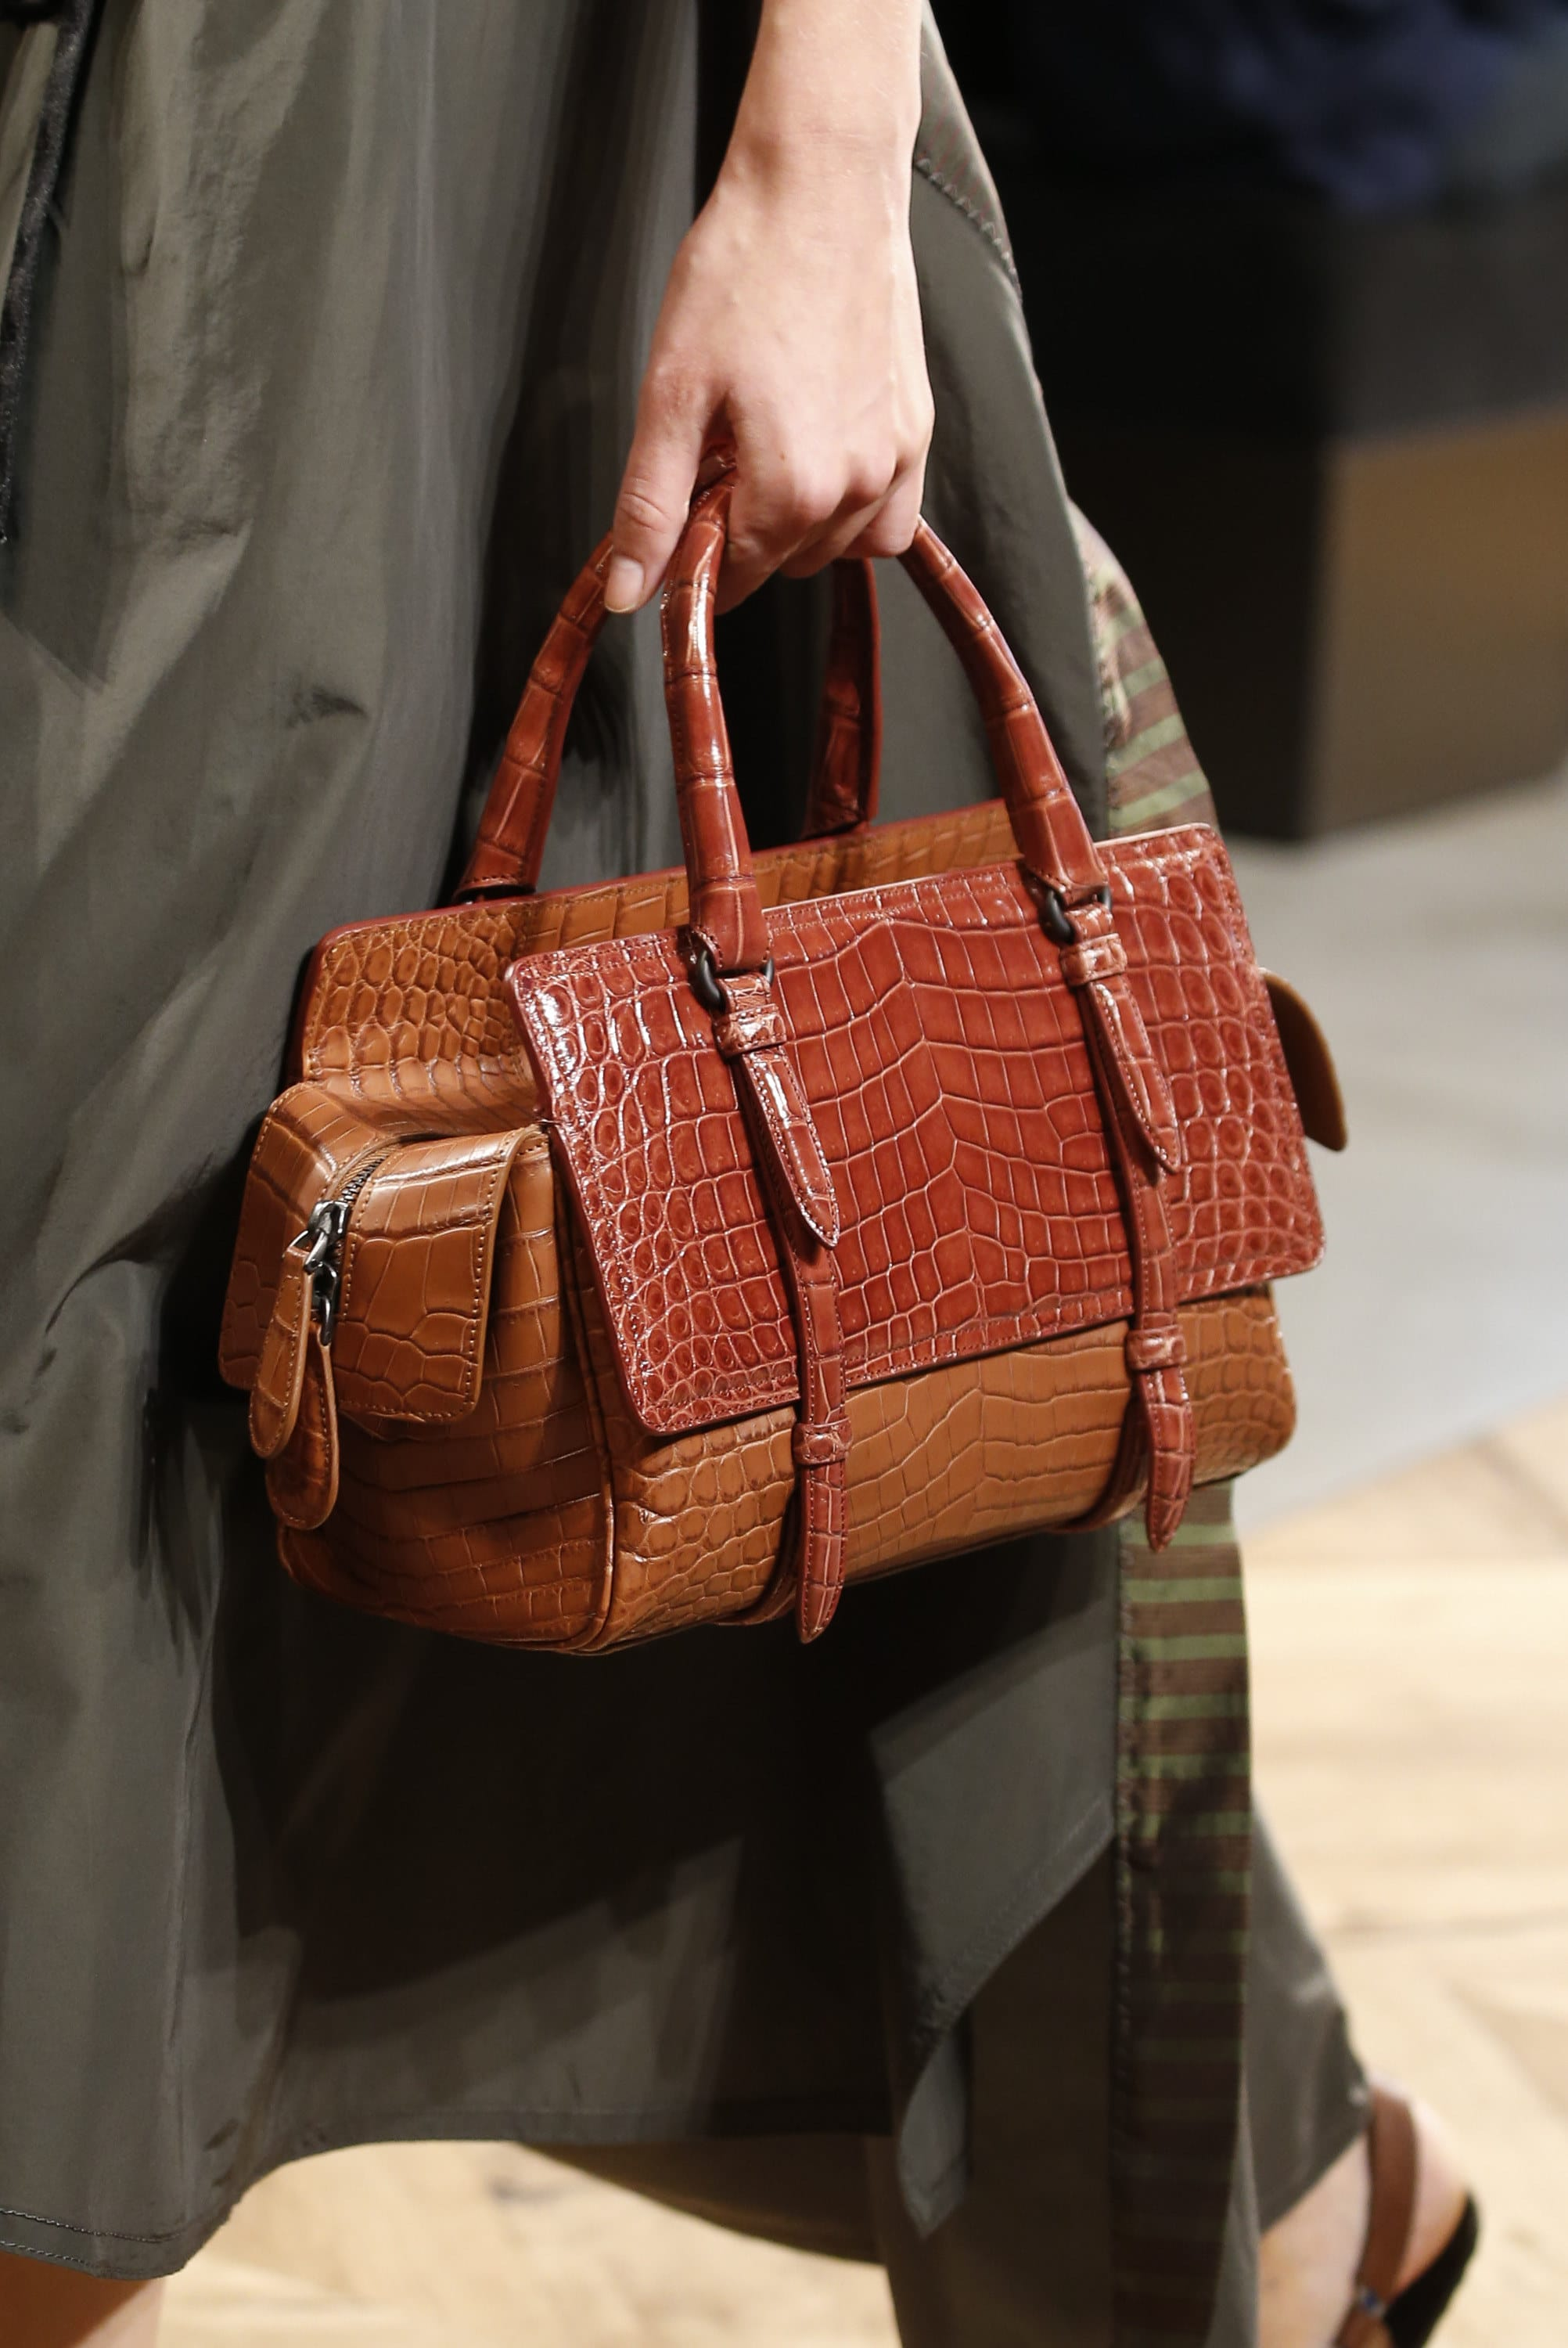 Fendi spring summer 2015 runway bag collection spotted fashion - Bottega Veneta Brown Crocodile Monaco Bag Spring 2016